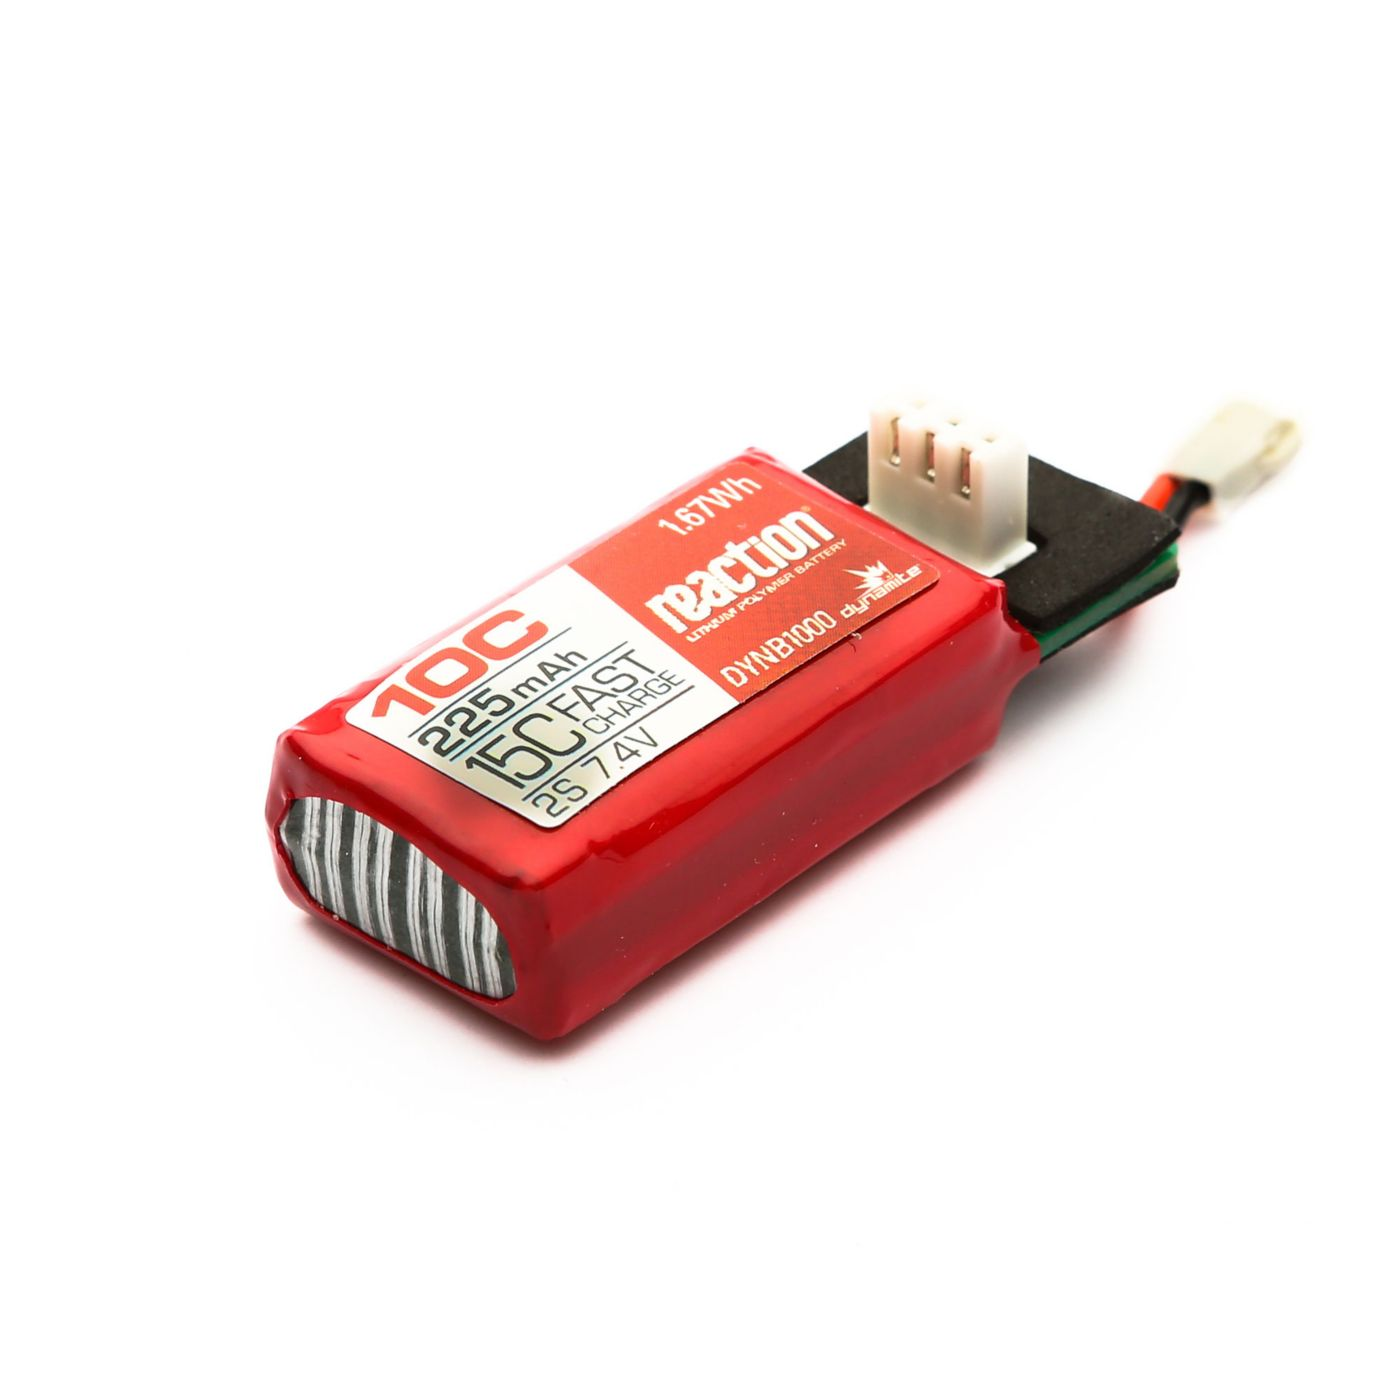 Reaction 7.4V 225mA 2S 10C HyperCharge LiPo